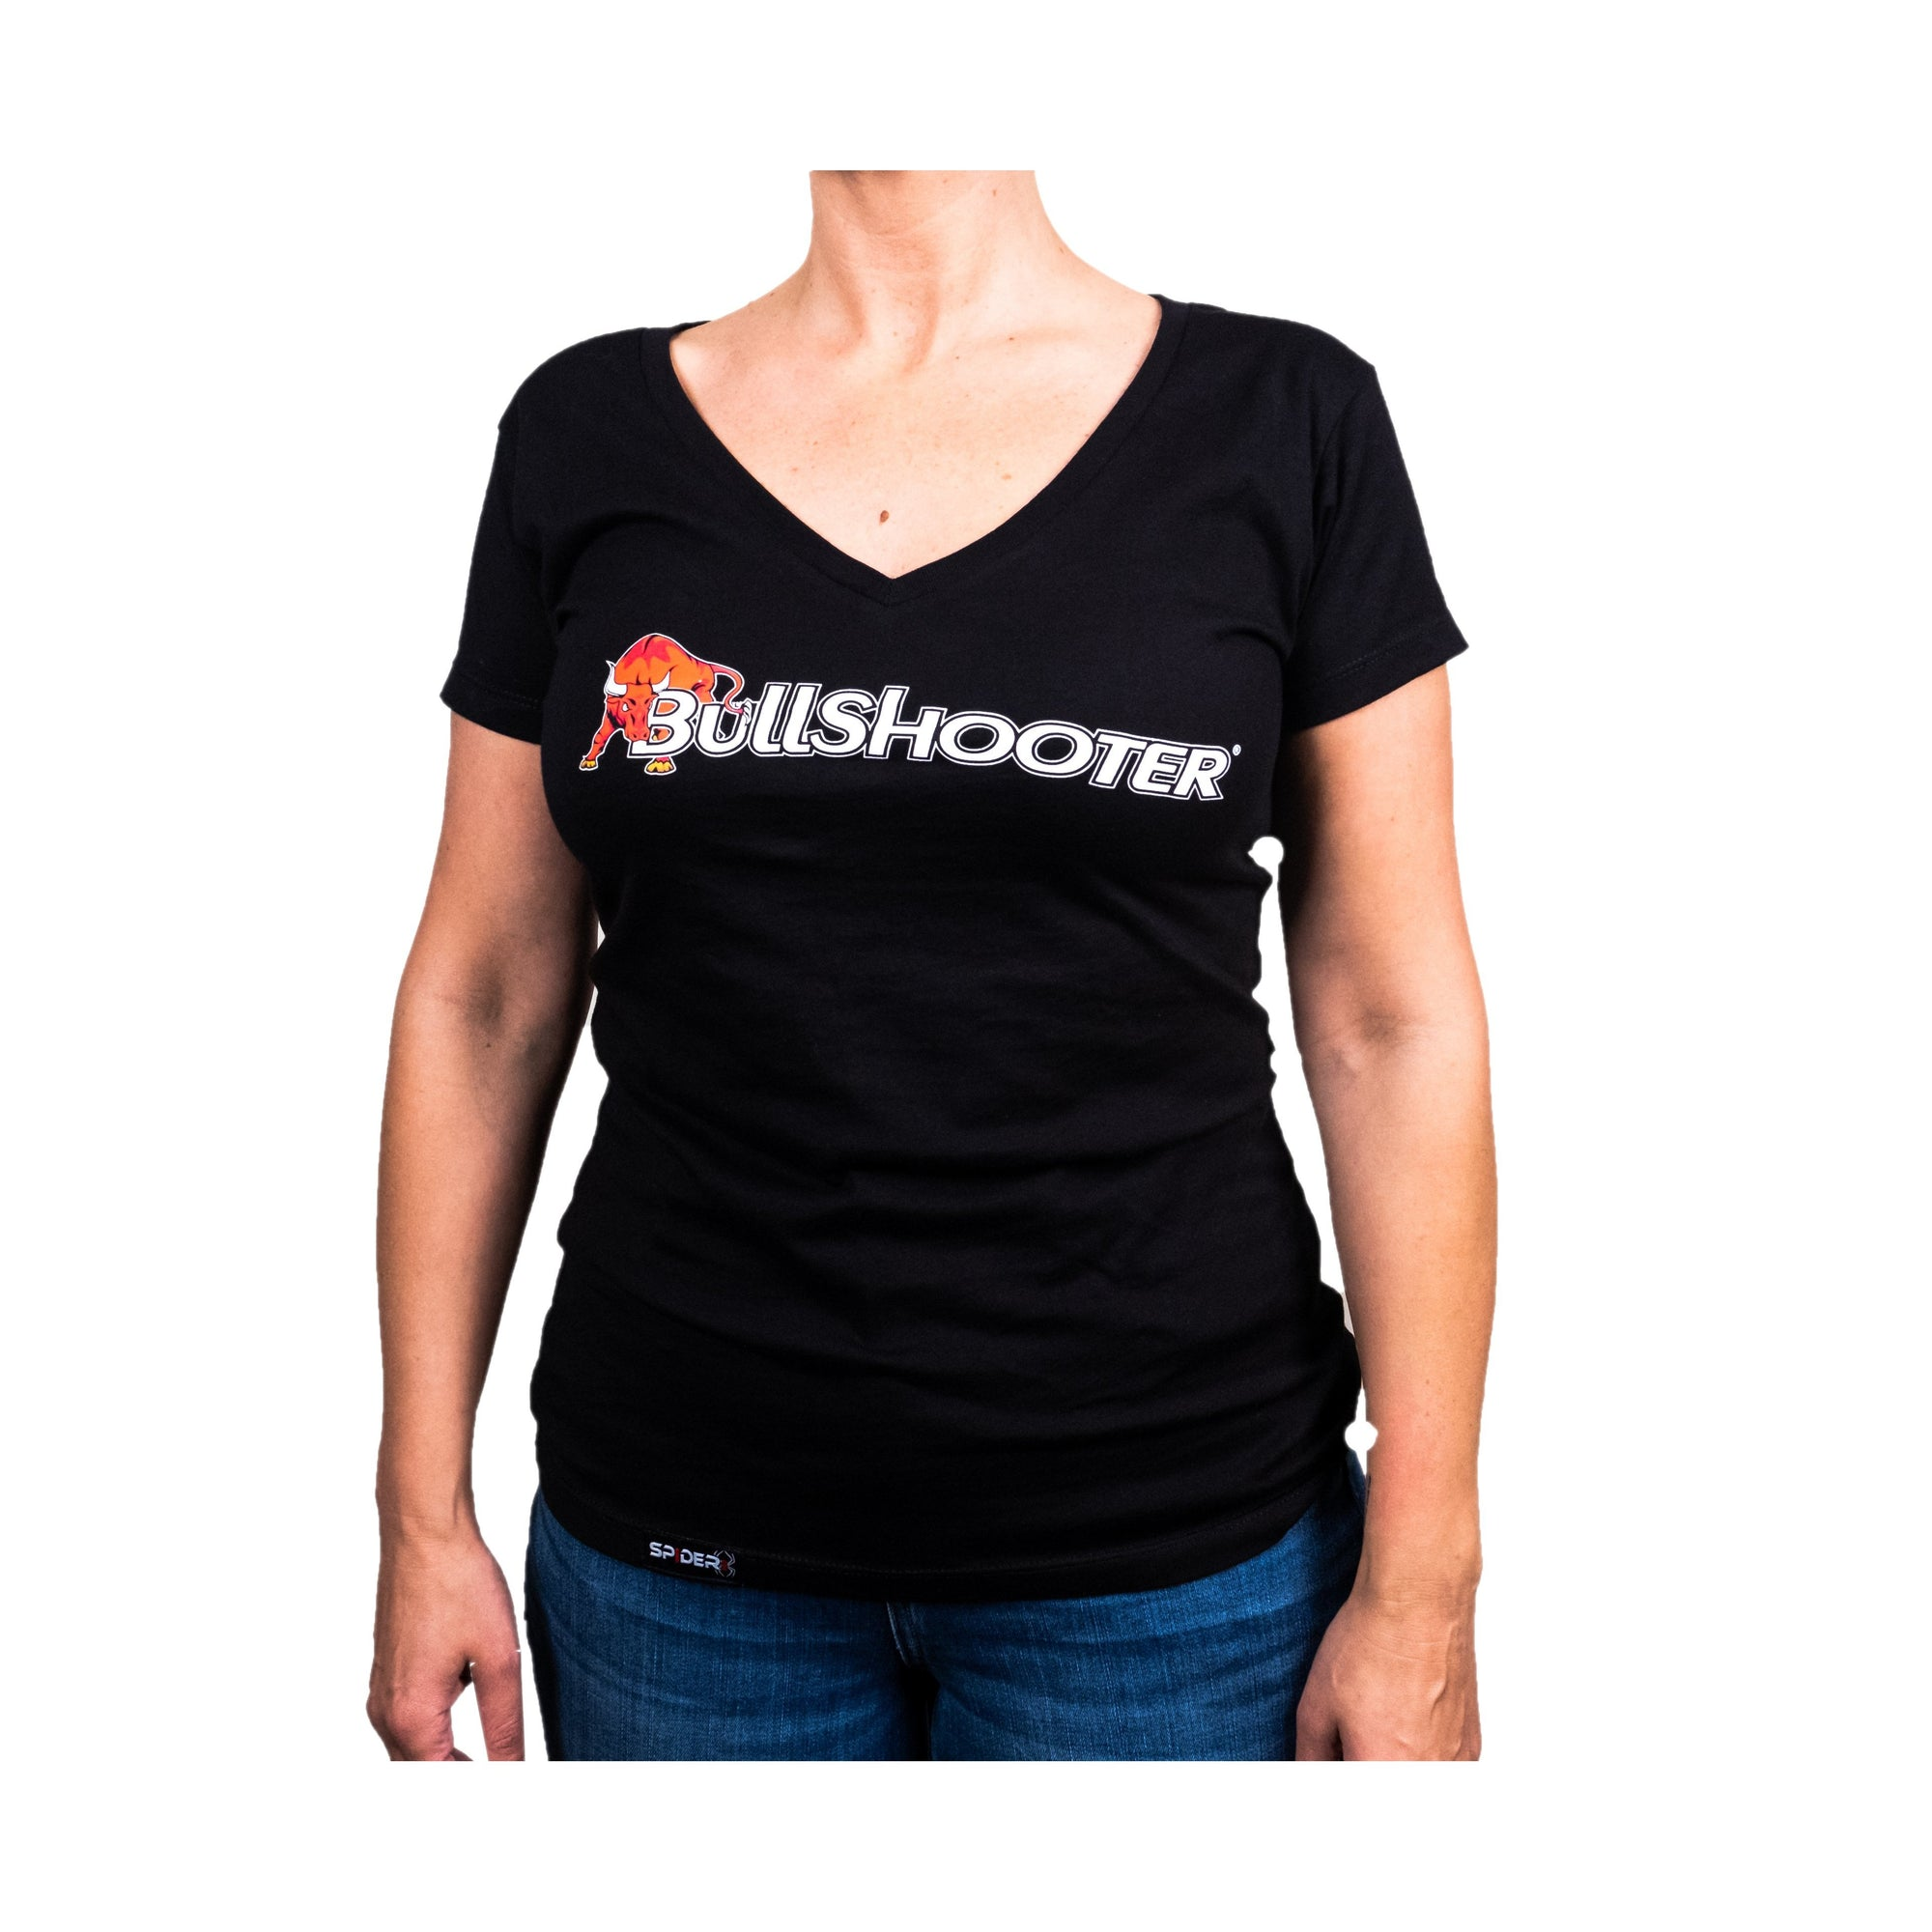 Ladies BullShooter V-neck - Black